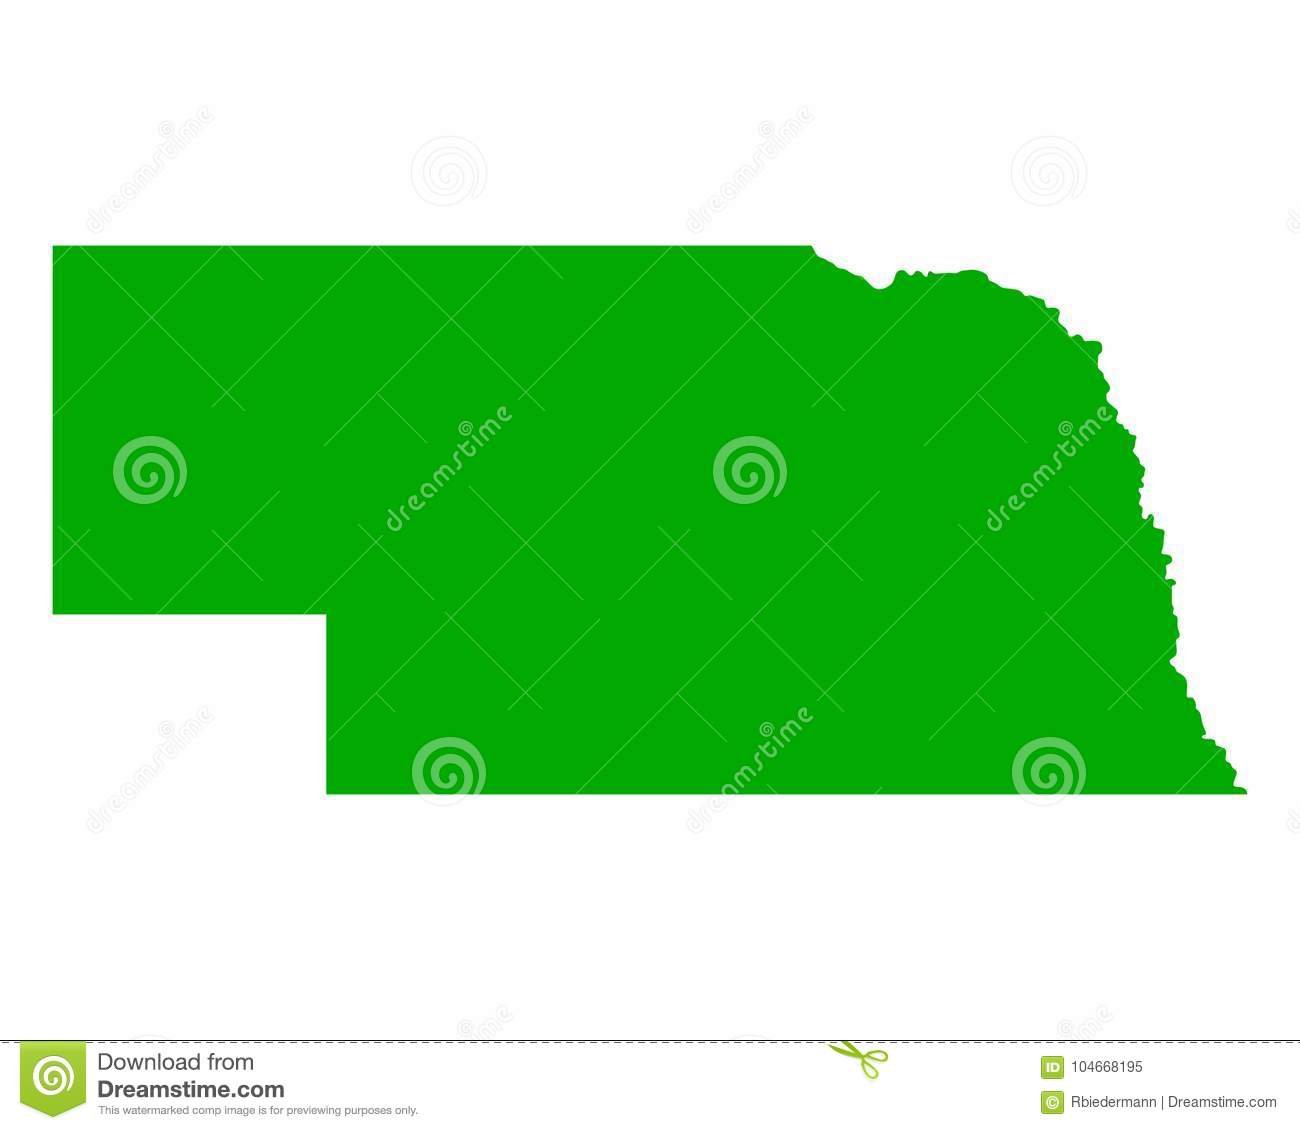 Free Nebraska Map.Map Of Nebraska Stock Vector Illustration Of United 104668195